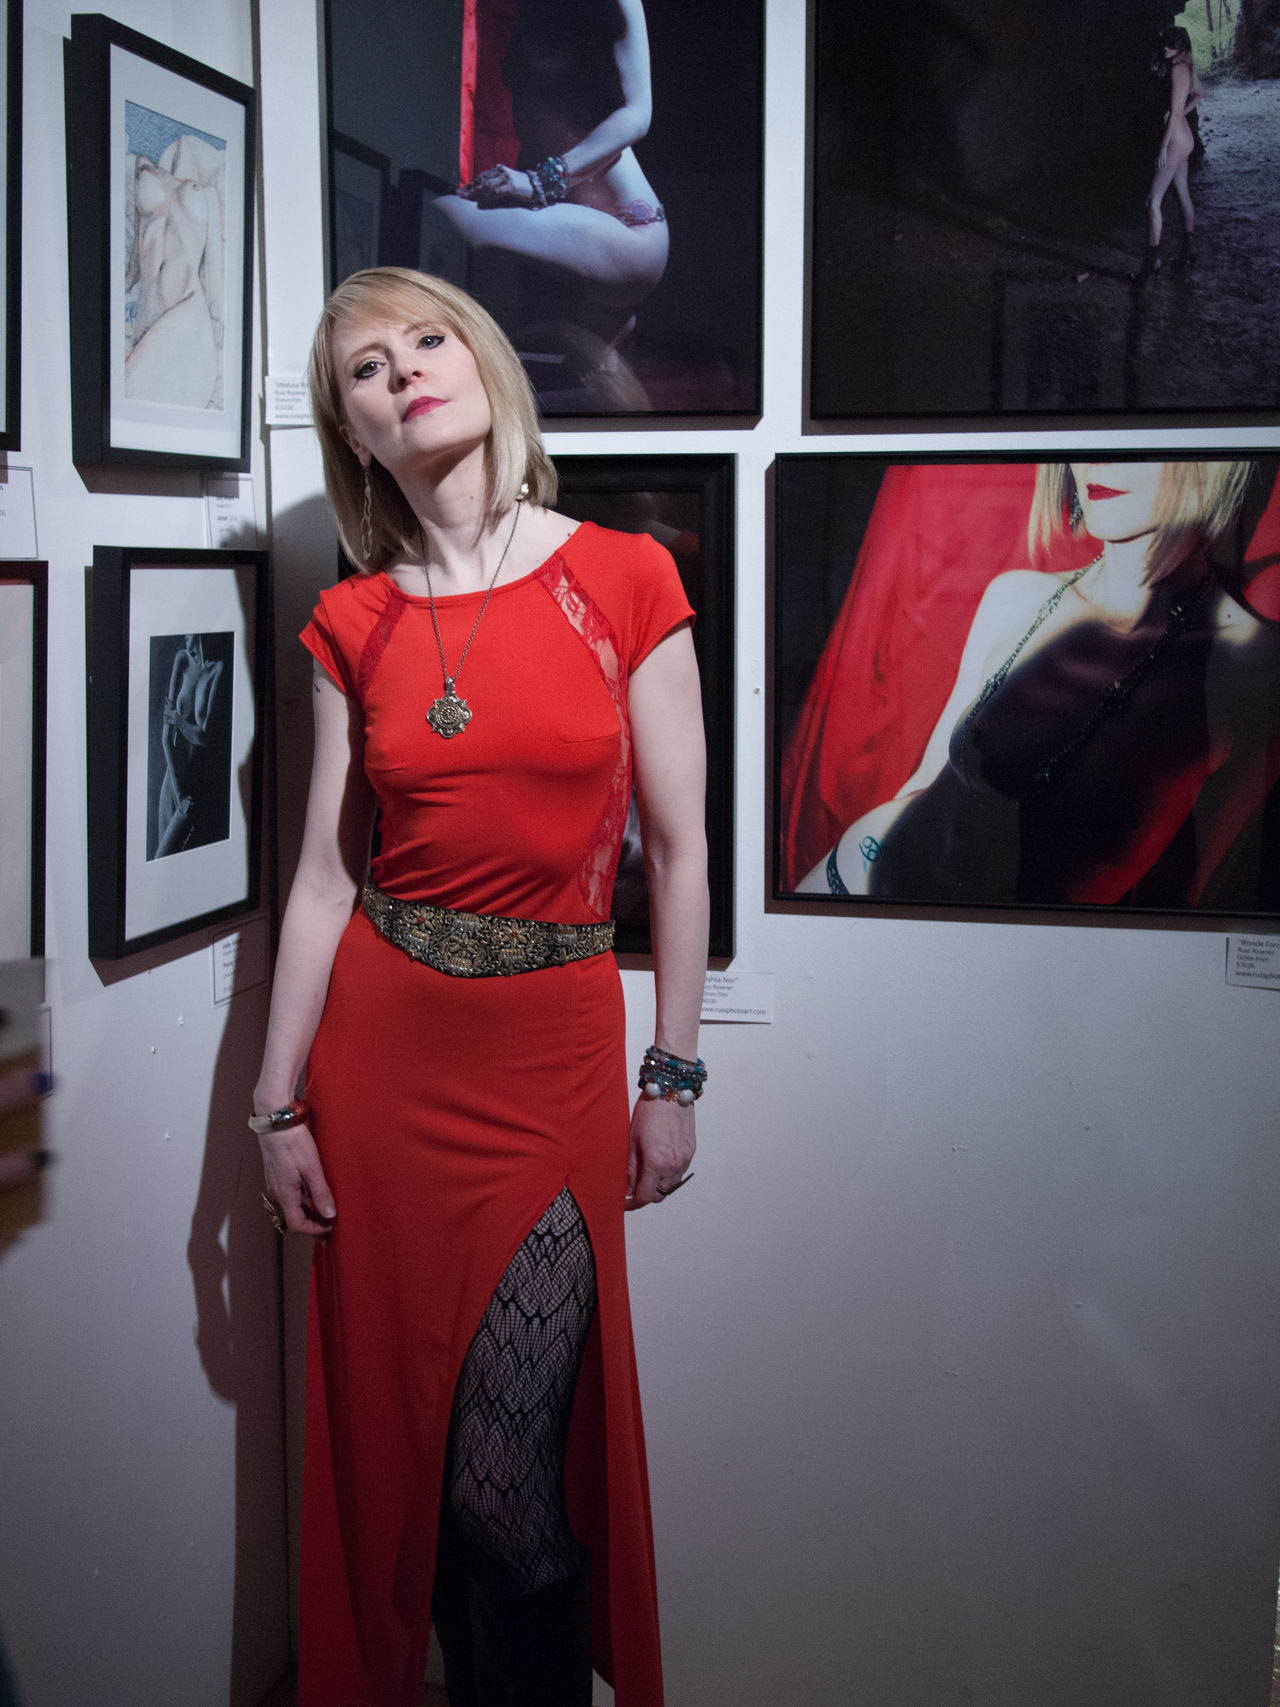 Kitka13 standing by my photographs of her at Naughti Gras Art show. Adult Art Exhibit Art Gallery Arts Culture And Entertainment Beautiful Woman Beauty Blonde Girl Fashion Indoors  Model Nightlife . One Person One Woman Only Only Women People Red Red Dress Red Lips Reflection She Walks In Beauty